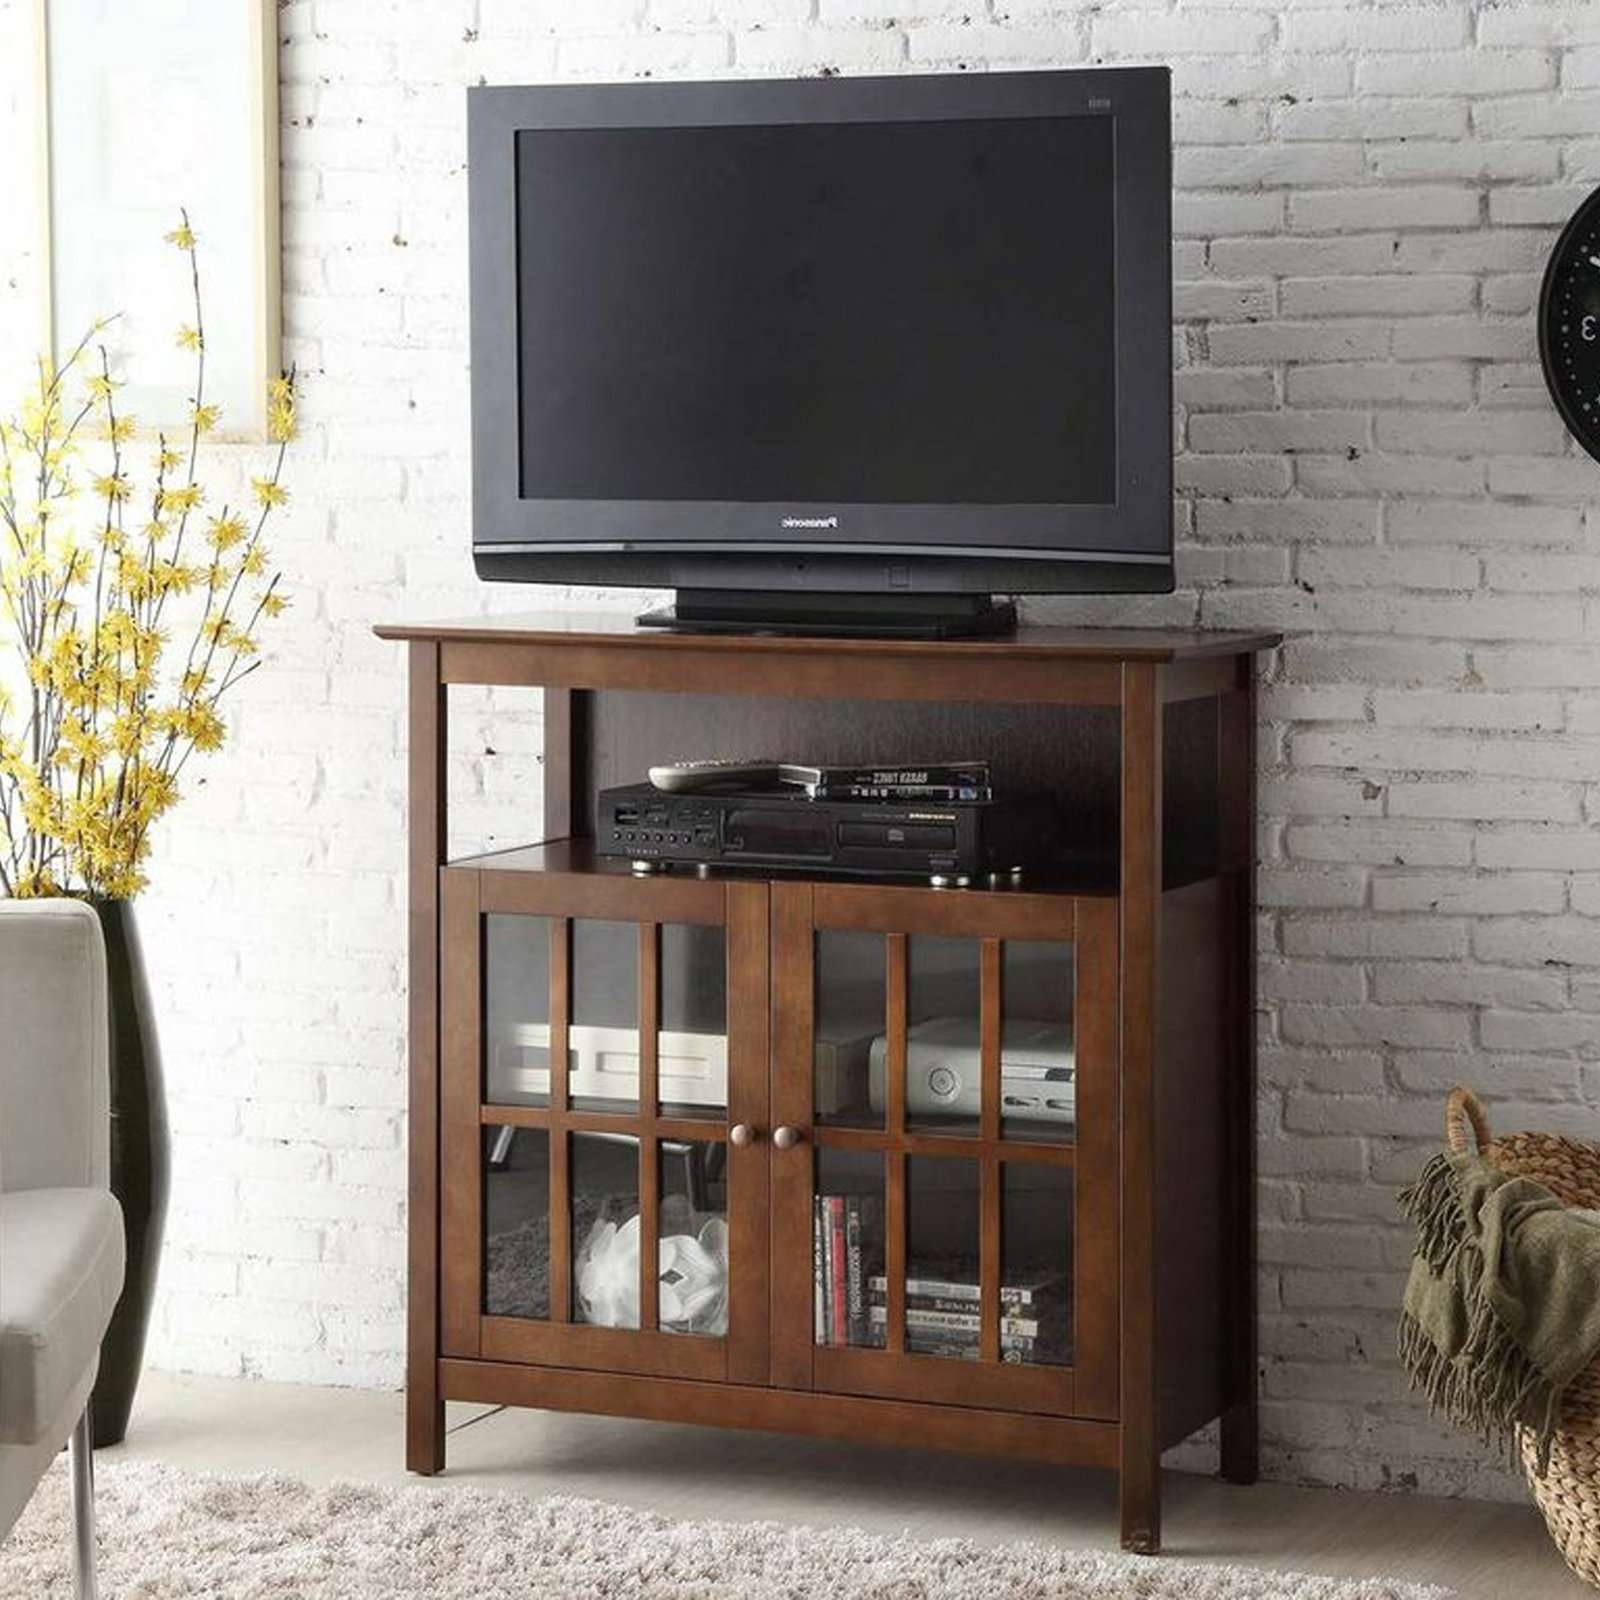 Tall Corner Tv Stand With Mount (View 11 of 15)